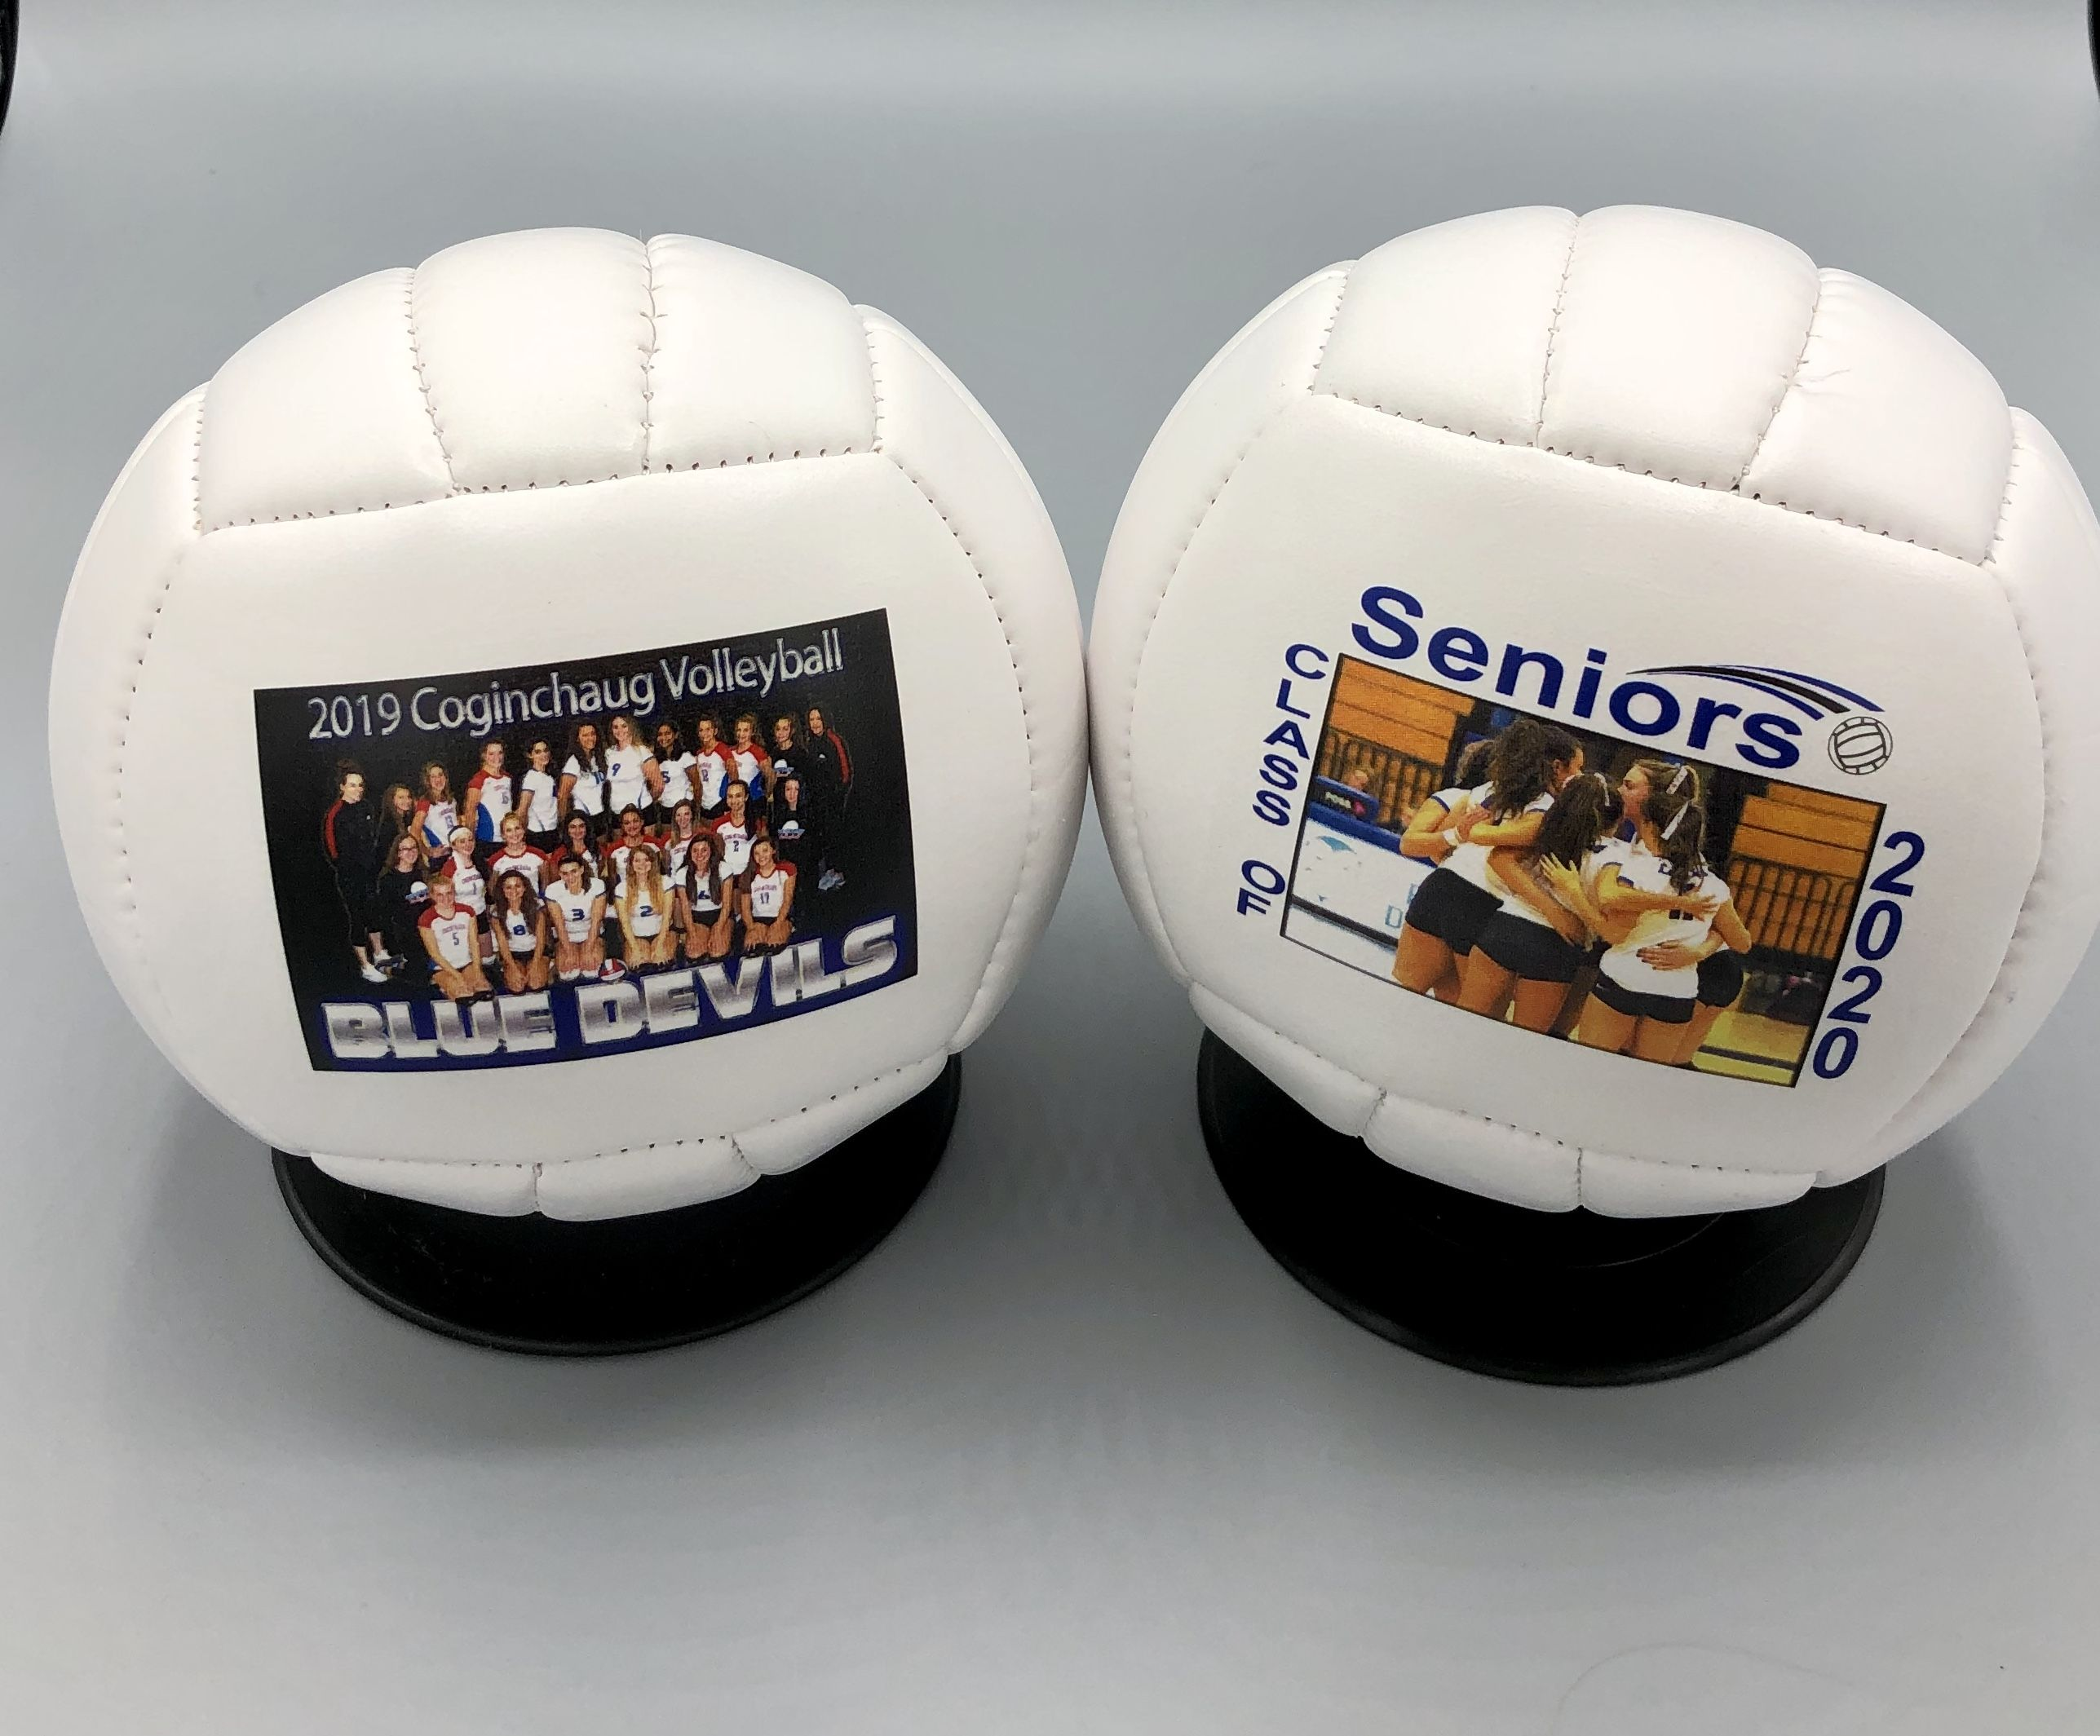 Cute Mini Volleyballs For The Seniors Seniorgift Volleyballgift Volleyball Volleyballcoachgift Volle Volleyball Gifts Sports Gifts Volleyball Coach Gifts